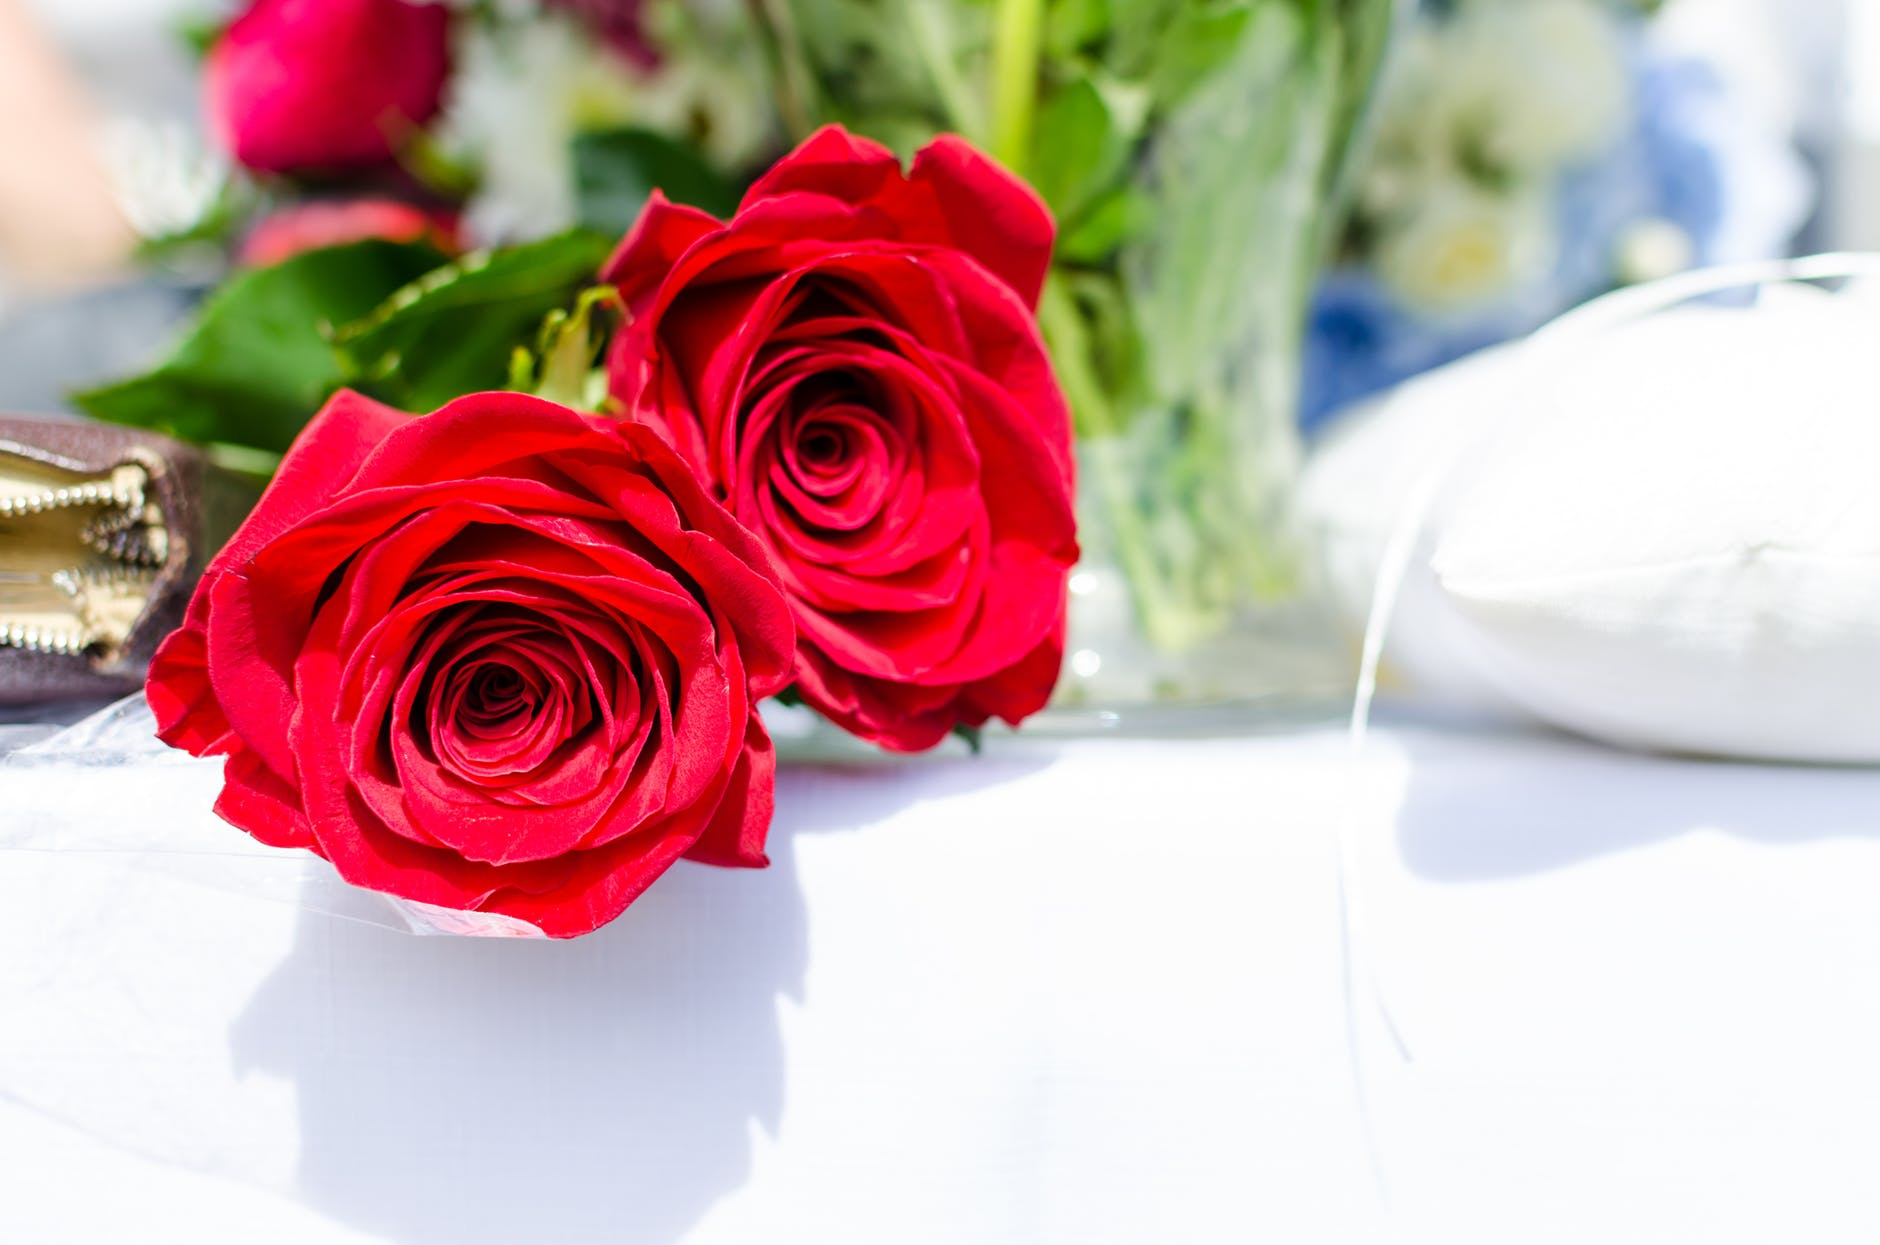 Rose Day 2020 Quotes, Wallpaper, Sms, Song